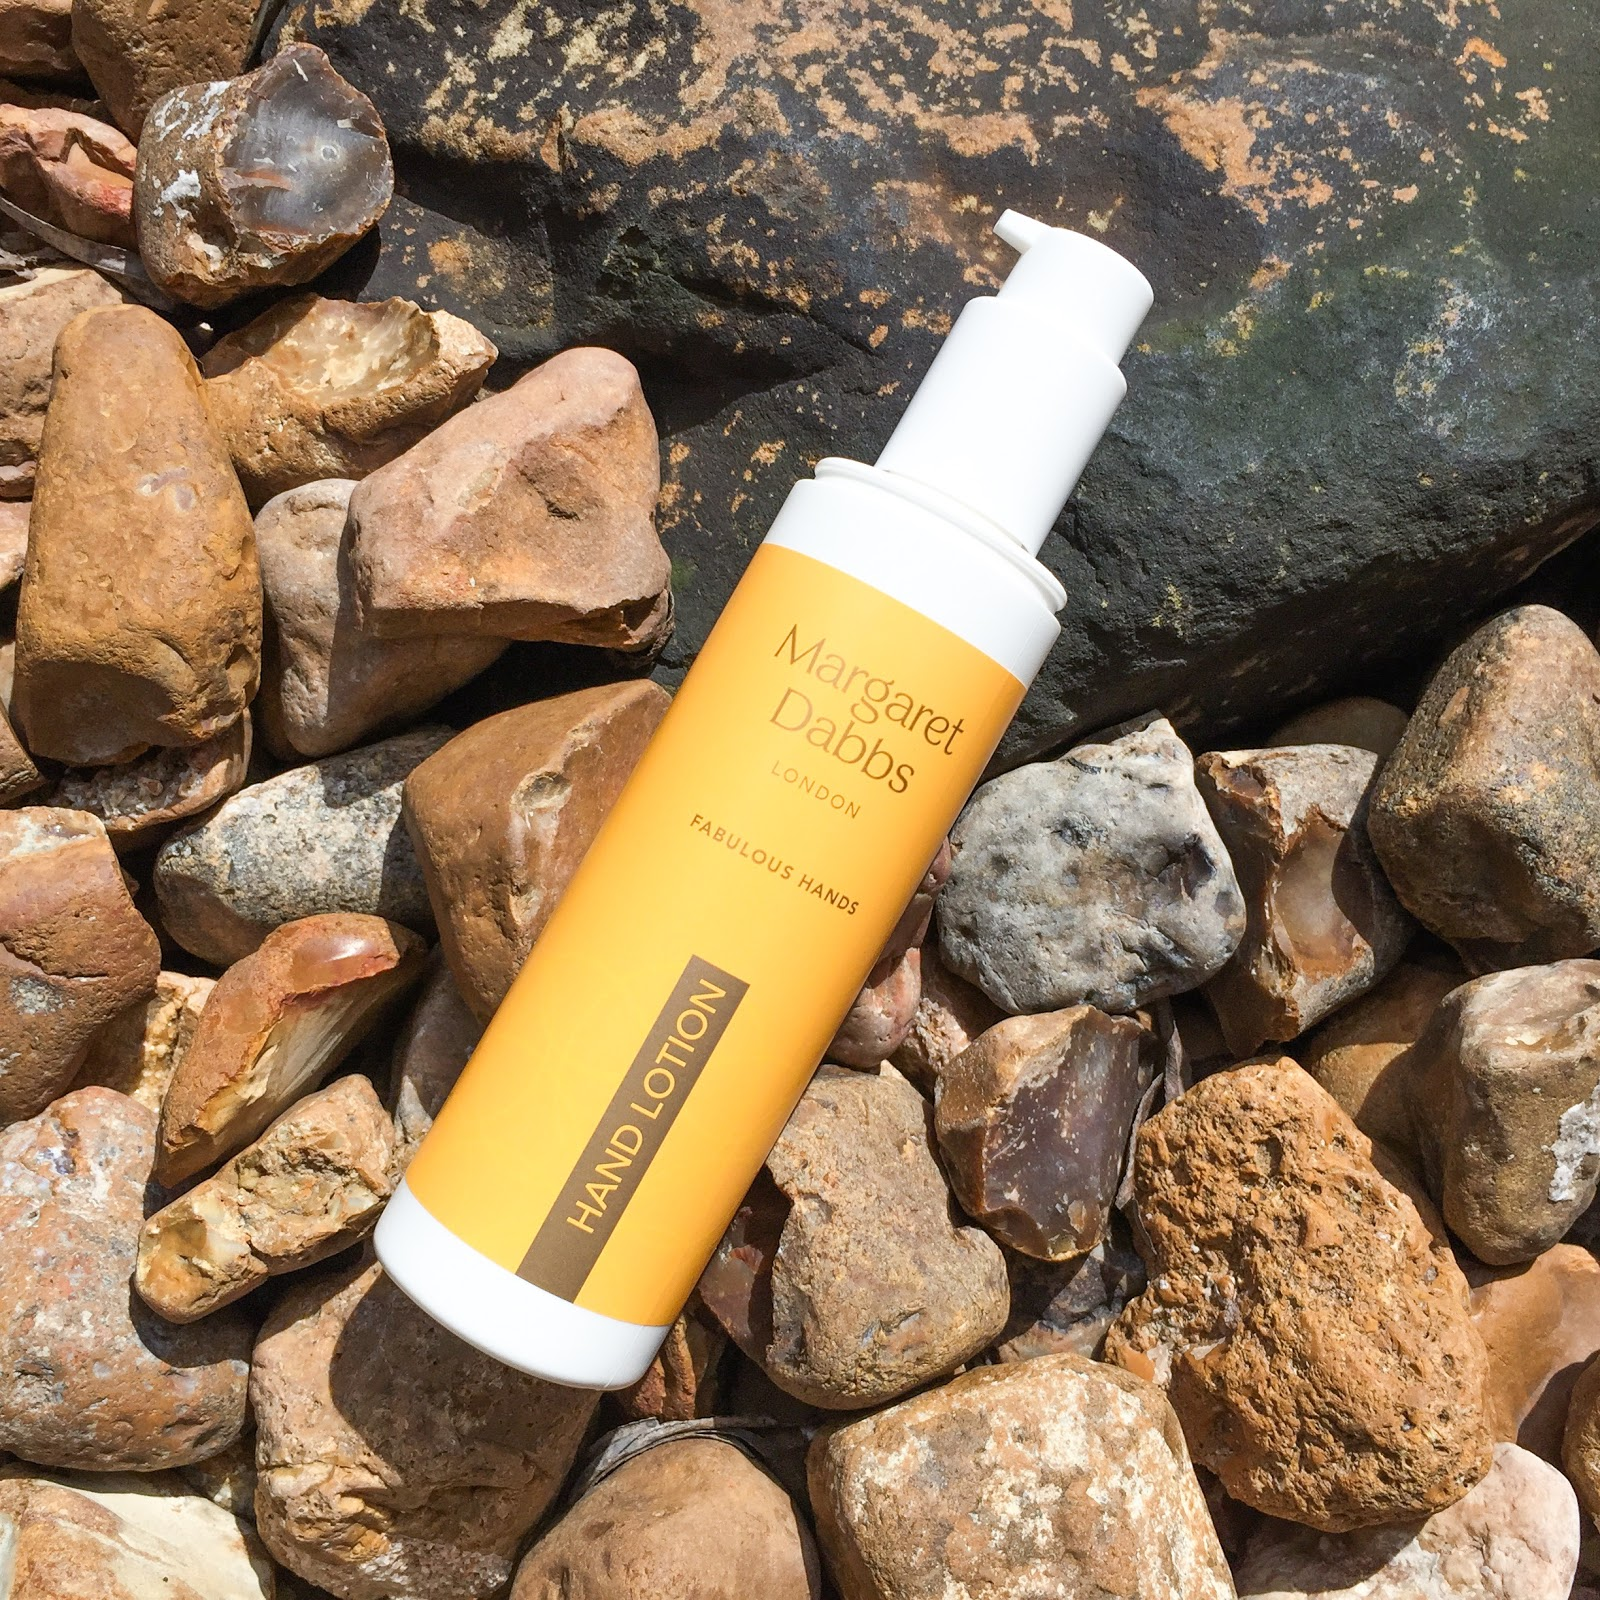 Image result for margaret dabbs intensive hydrating hand lotion